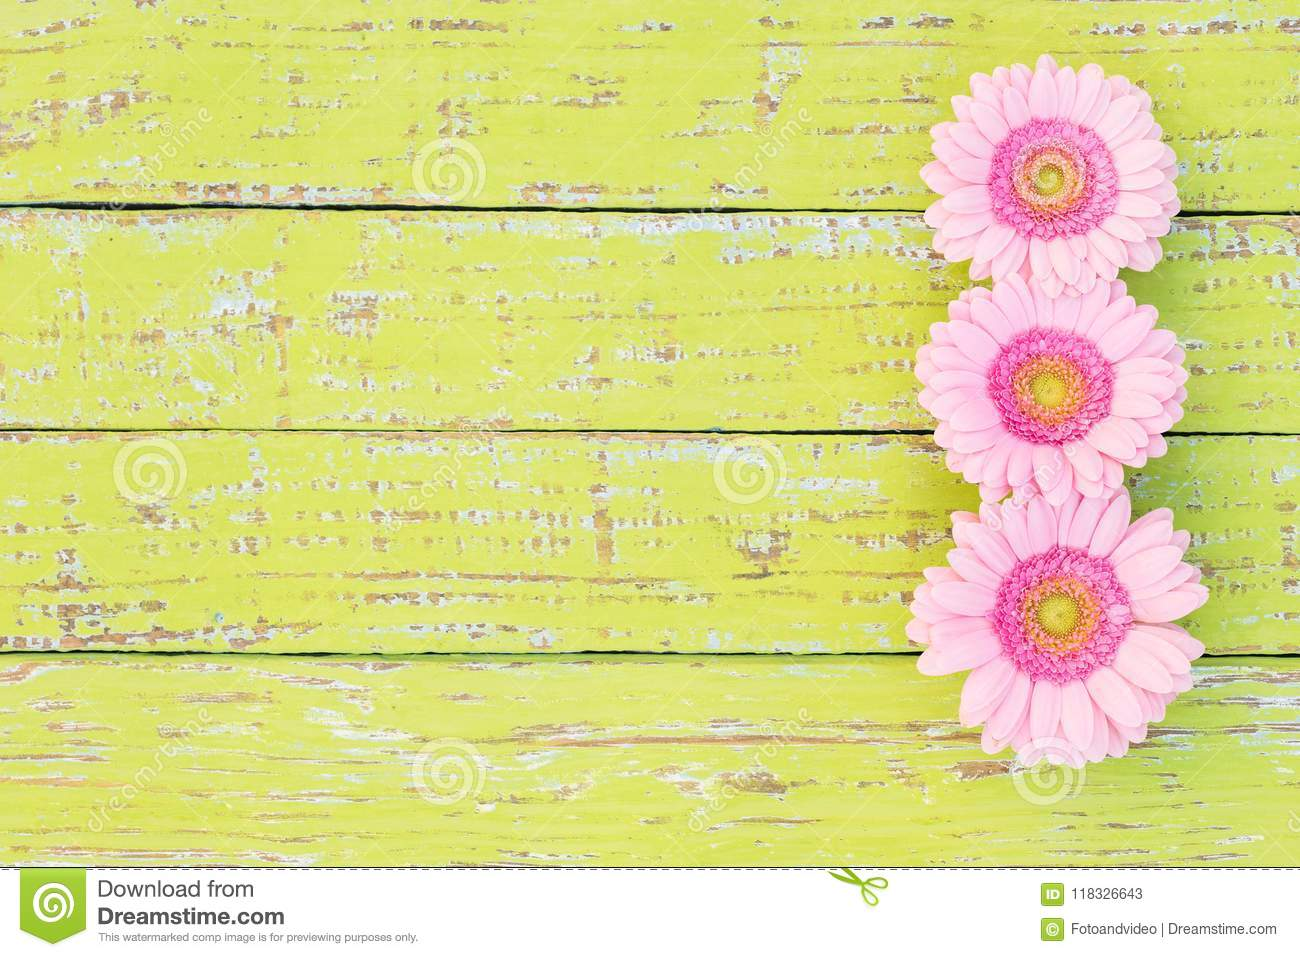 Pink Gerbera Daisy Flower Border On Rustic Wooden Background For